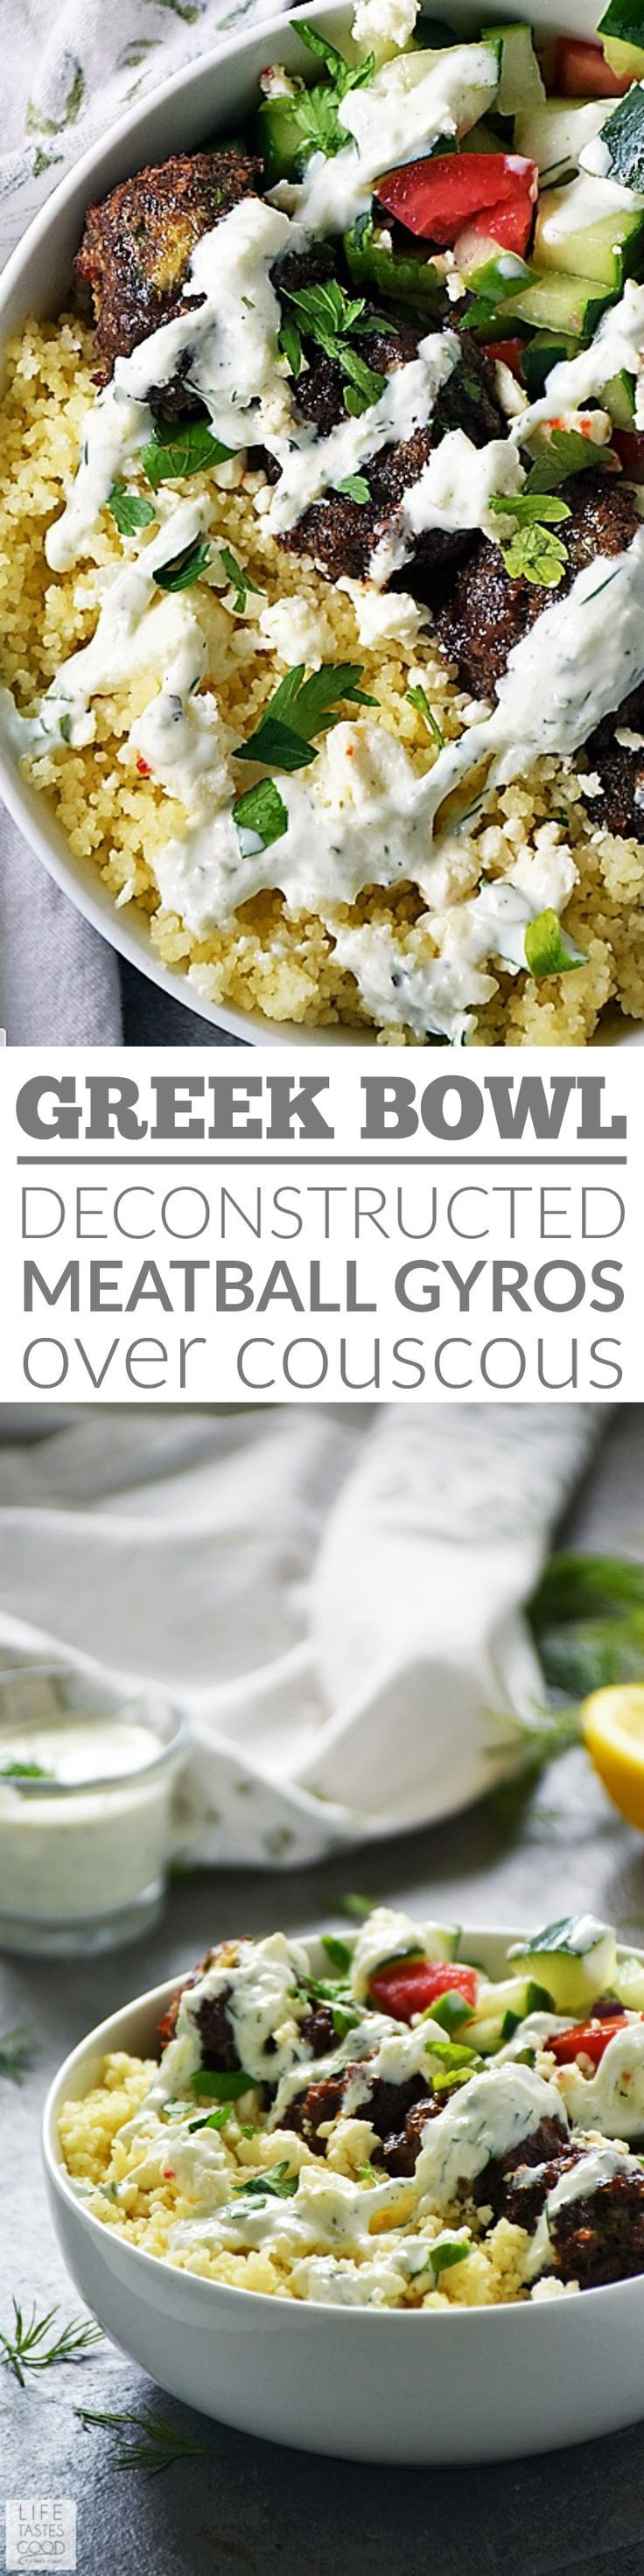 My Greek Bowl is an easy beef recipe, loaded with fresh ingredients for an explosion of exciting flavors in every bite! #LTGrecipes #meatballrecipes #bowlrecipes #greekrecipes #healthyrecipes